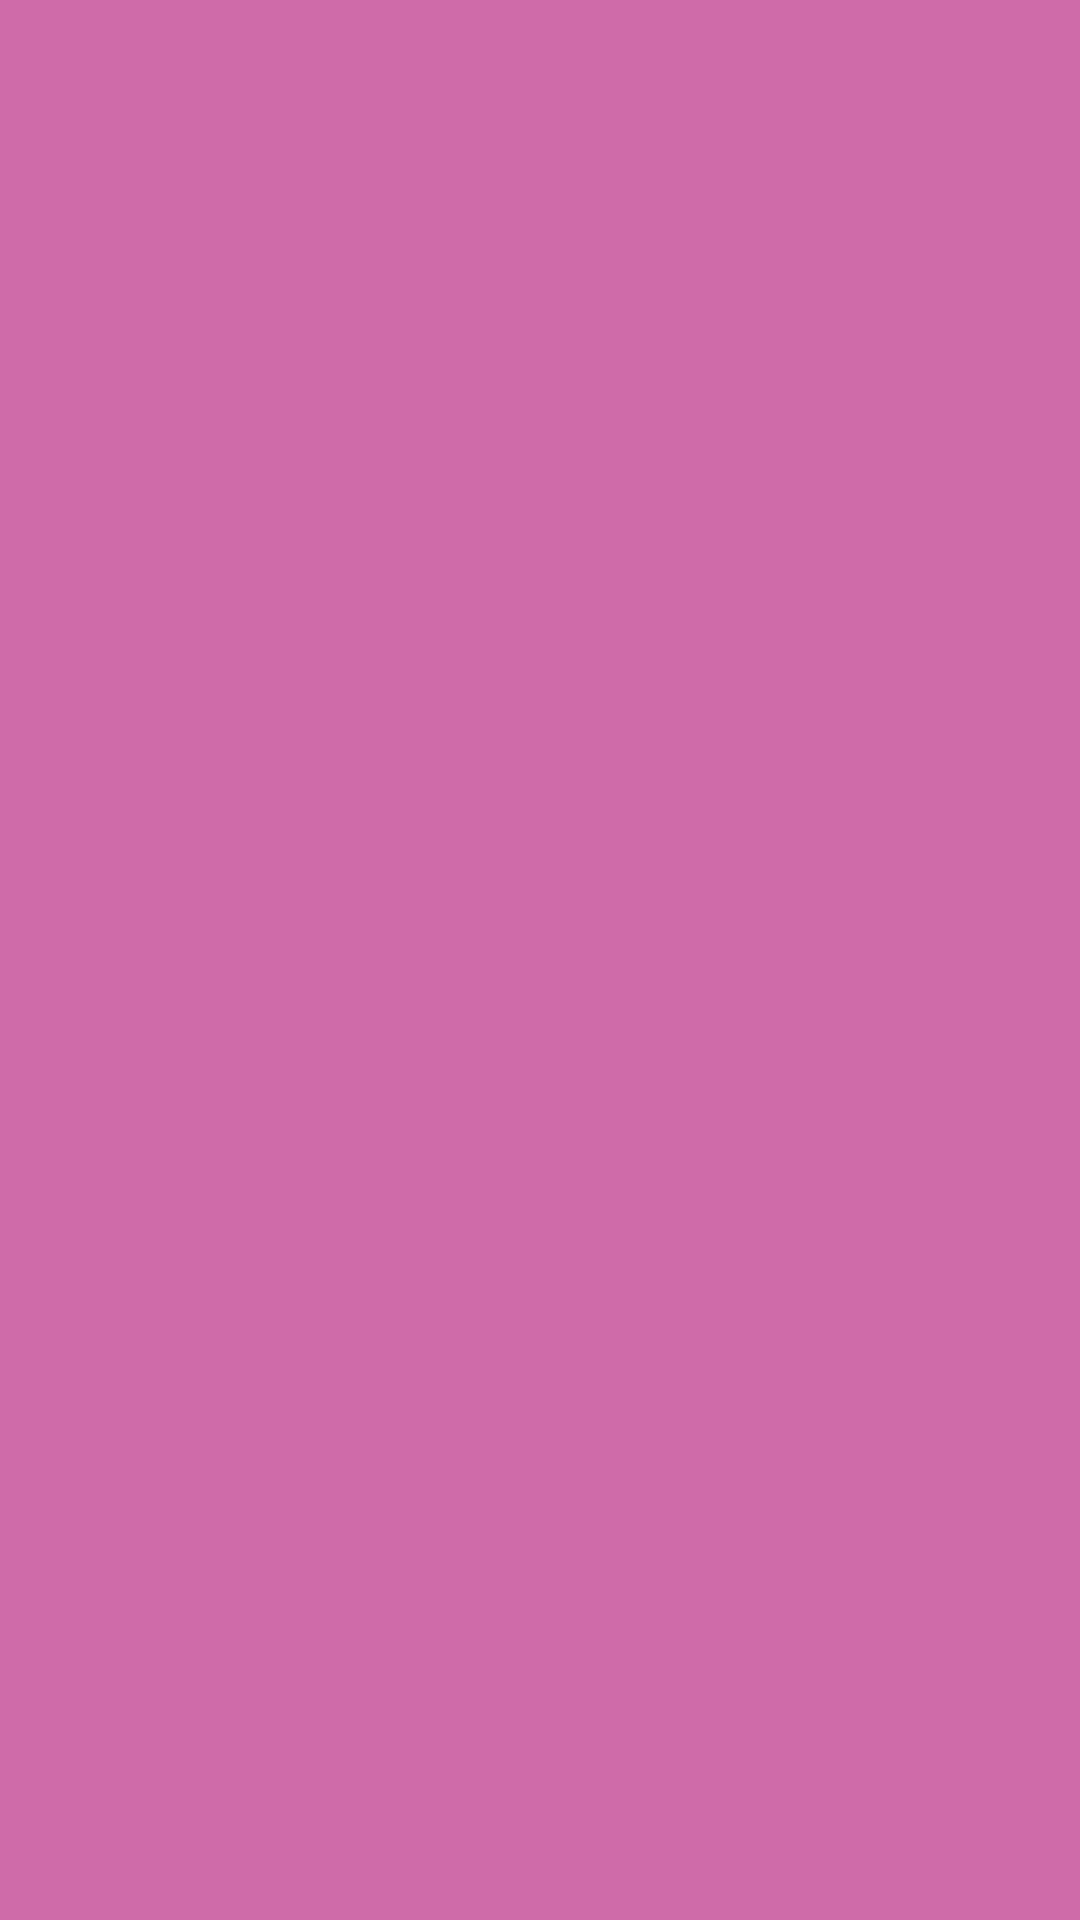 1080x1920 Super Pink Solid Color Background